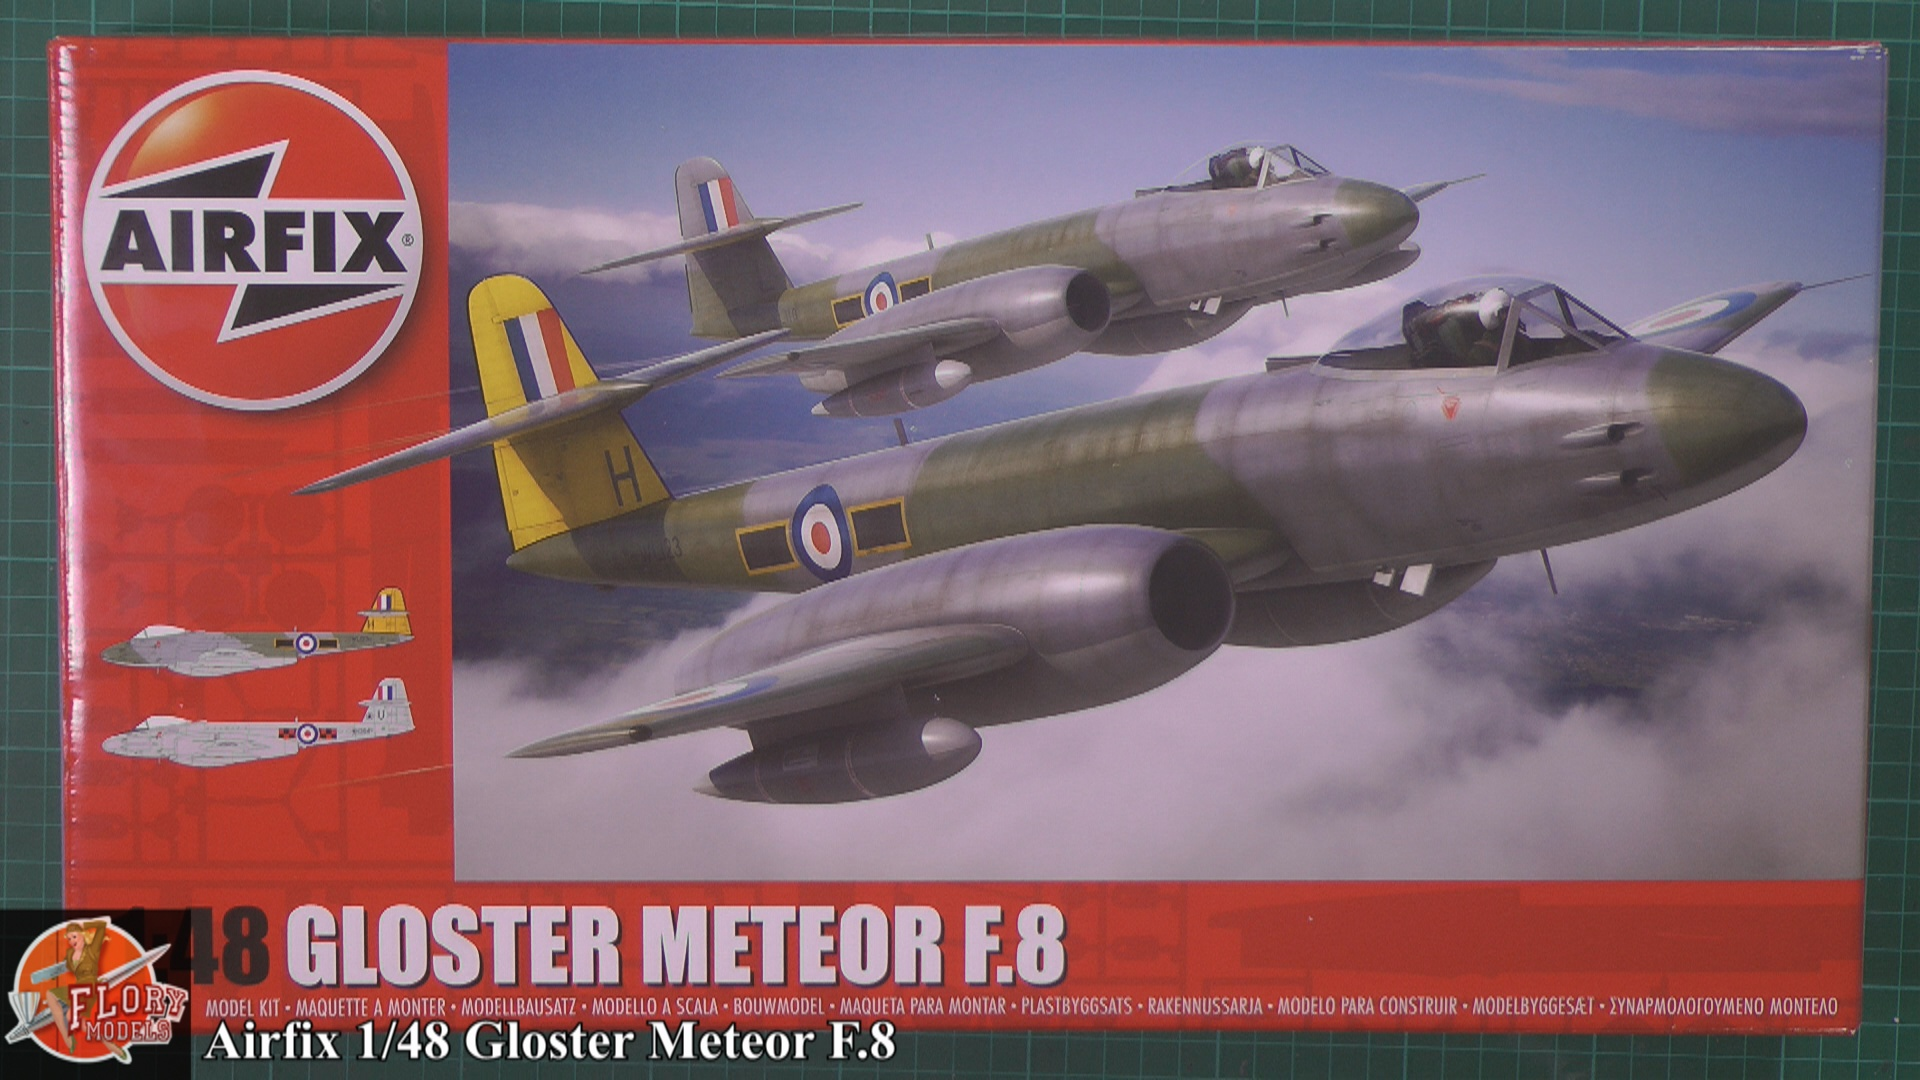 Gloster Meteor F.8 Scale: 1/48   Manufacture: Airfix   Parts used: Out of The Box   Main paints used: Hobby Color, MRP